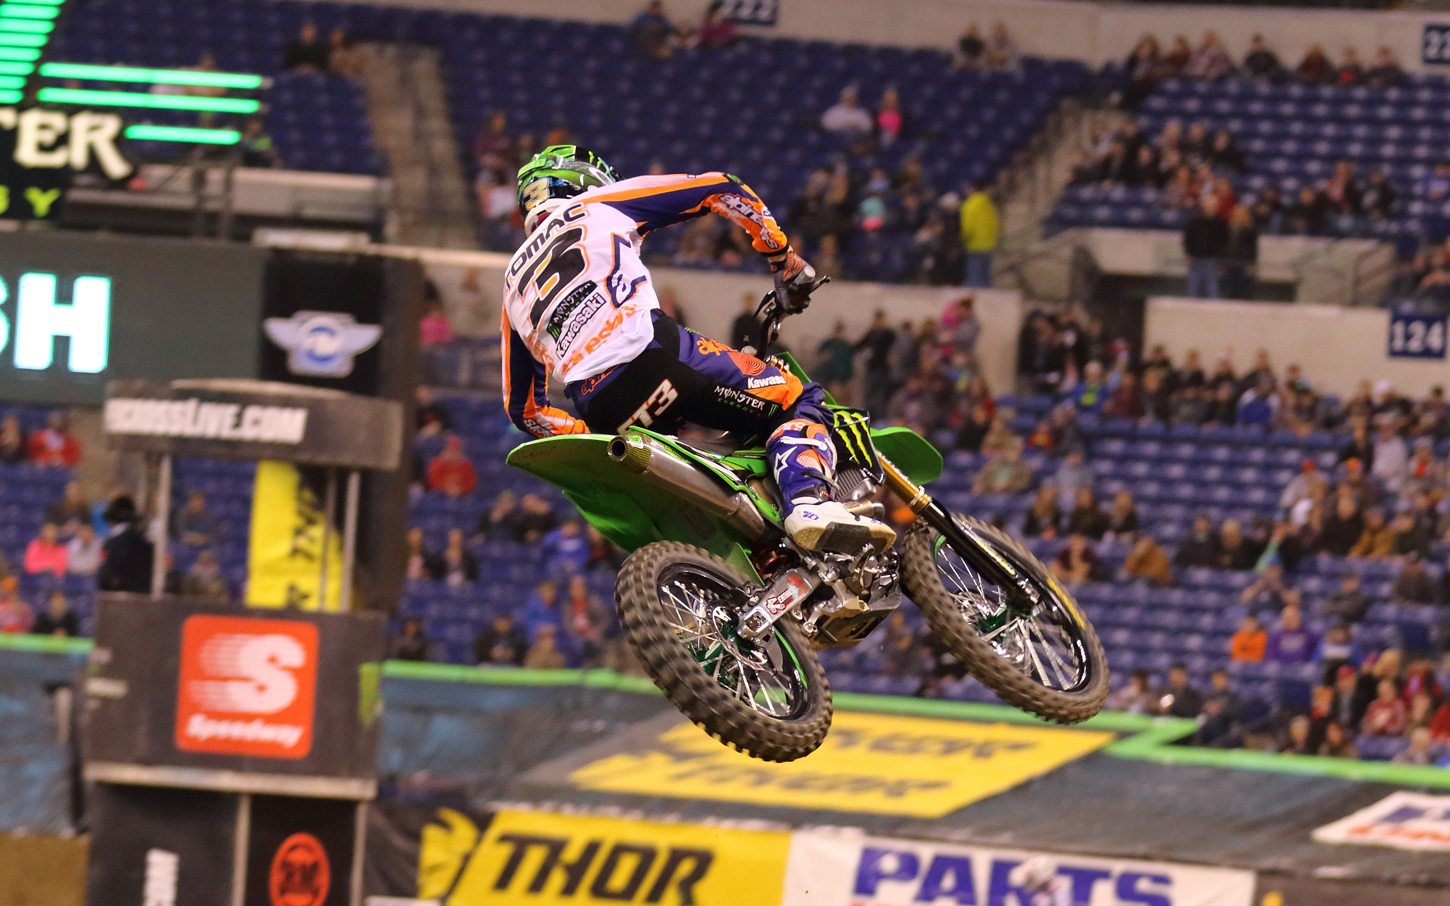 2017 Monster Energy Supercross Indianapolice_d0091546_08374495.jpg